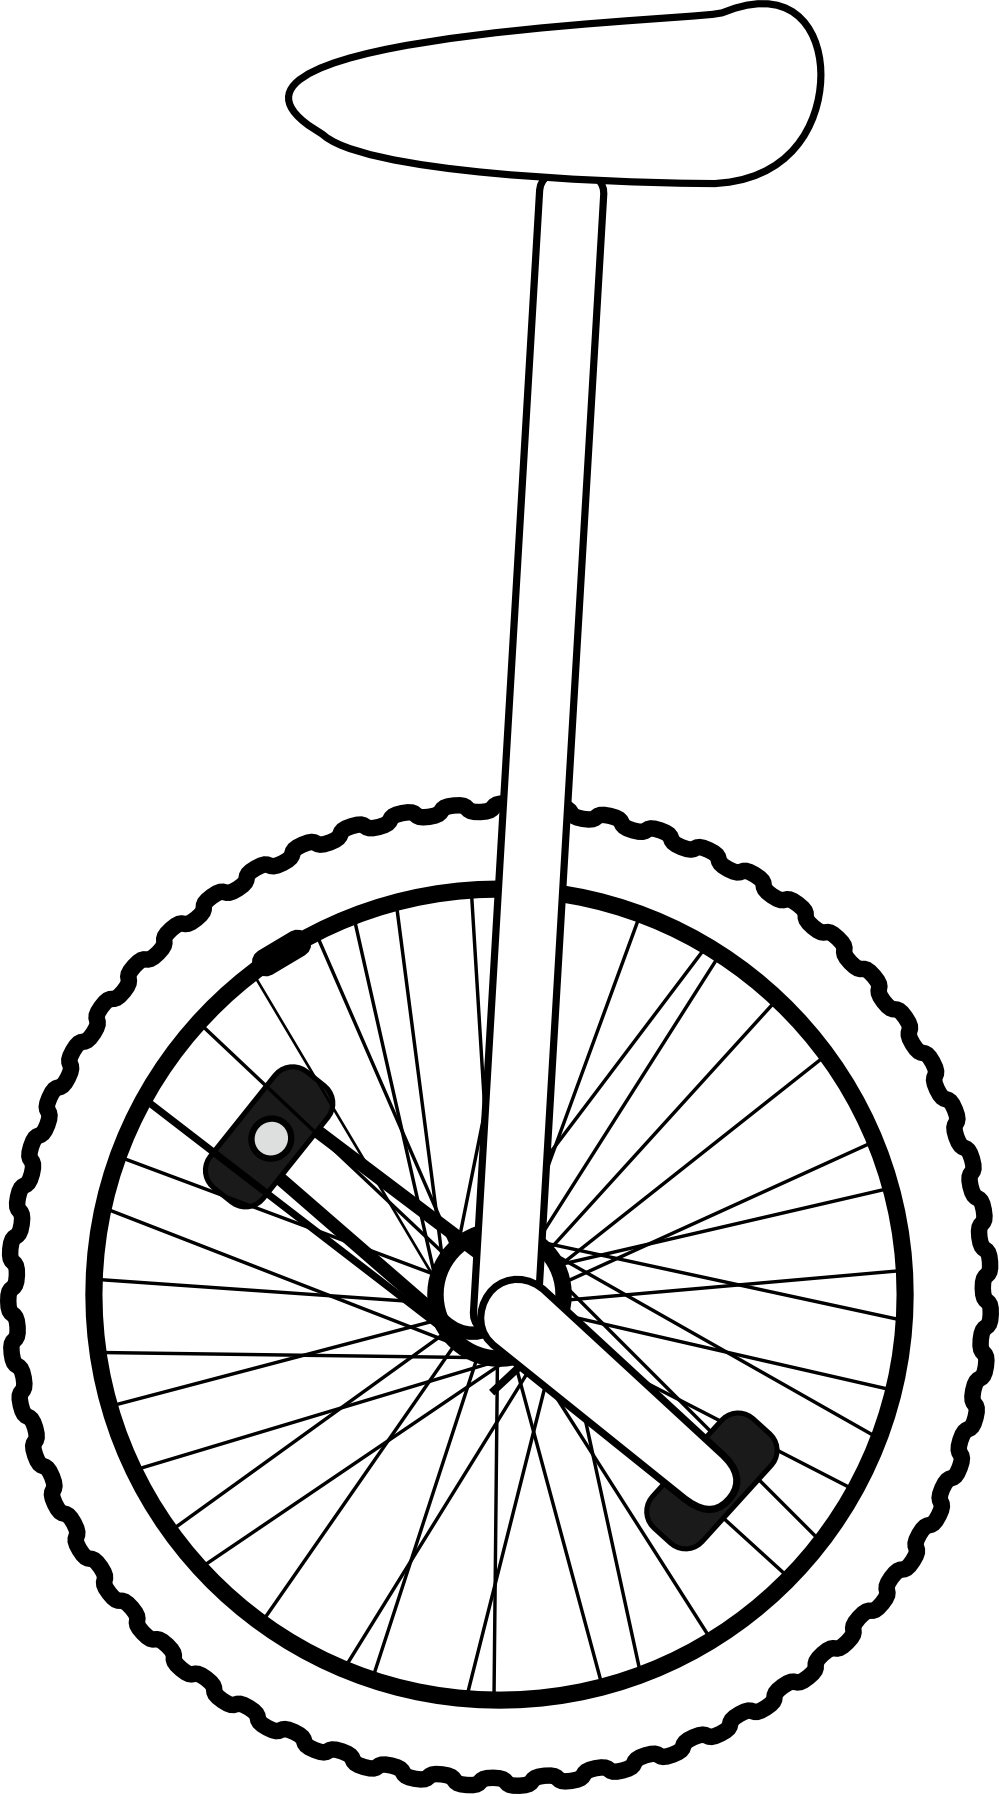 Line Art Clipart : Unicycle clipart black and white panda free